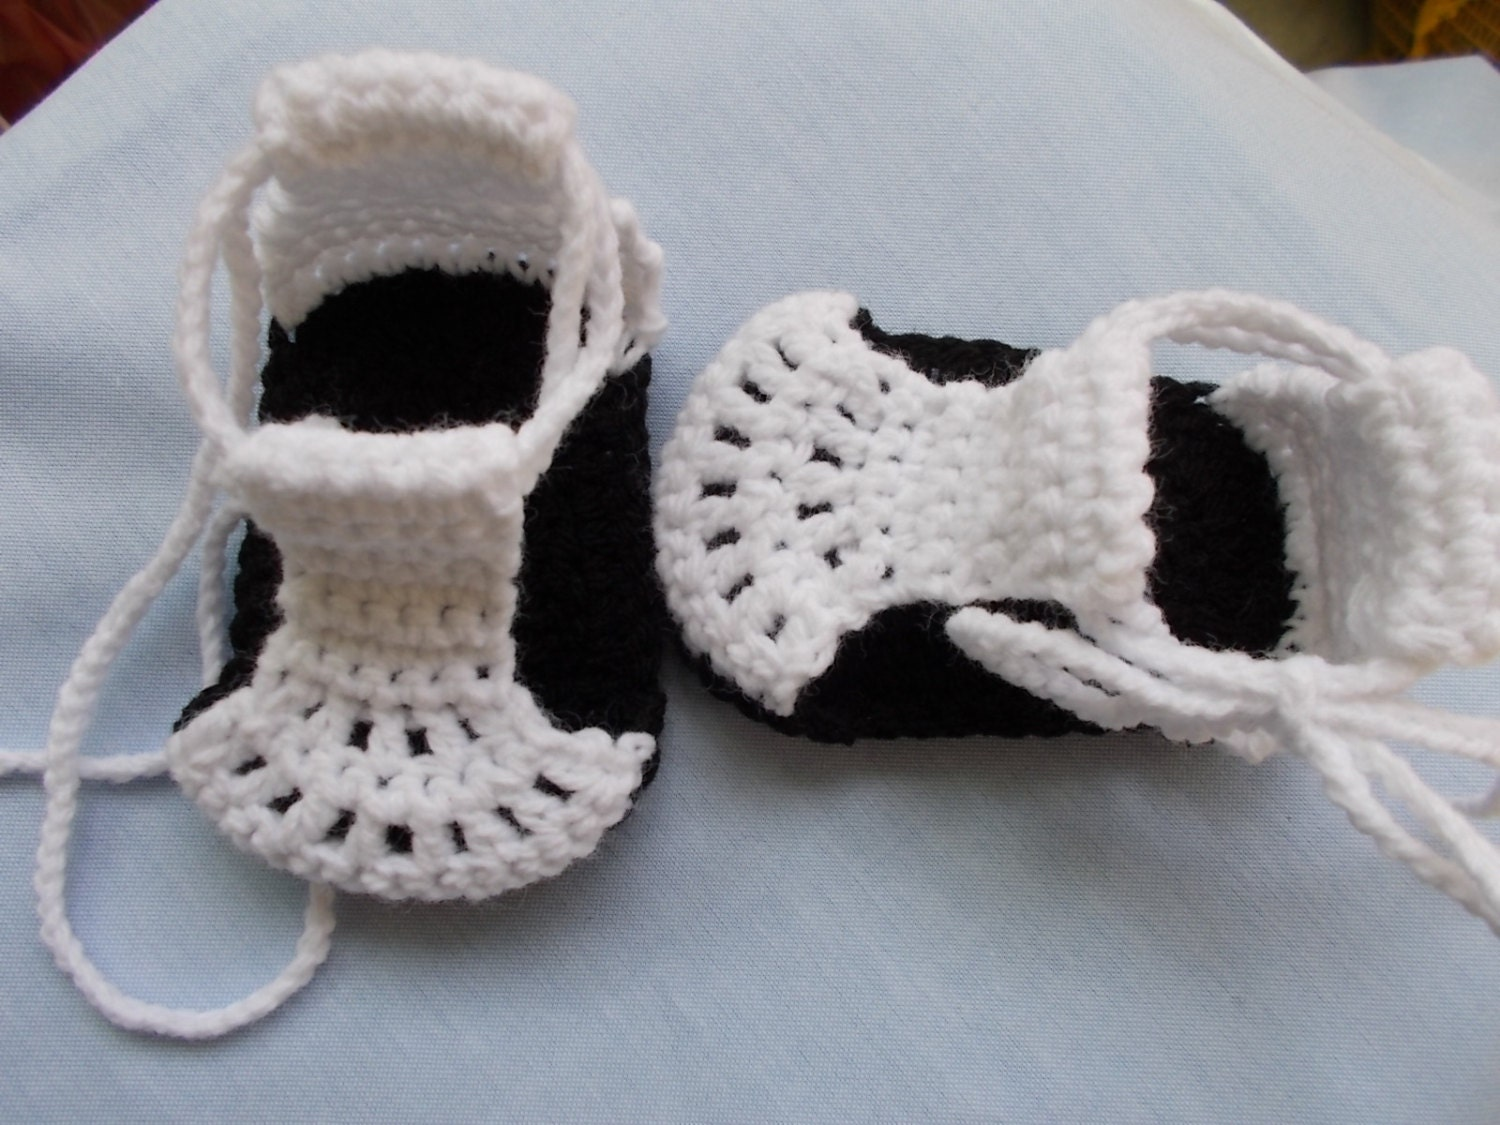 Crochet Baby Shawl Pattern Easy : CROCHET PATTERN Baby pattern Baby Shoes pattern by crochetveni